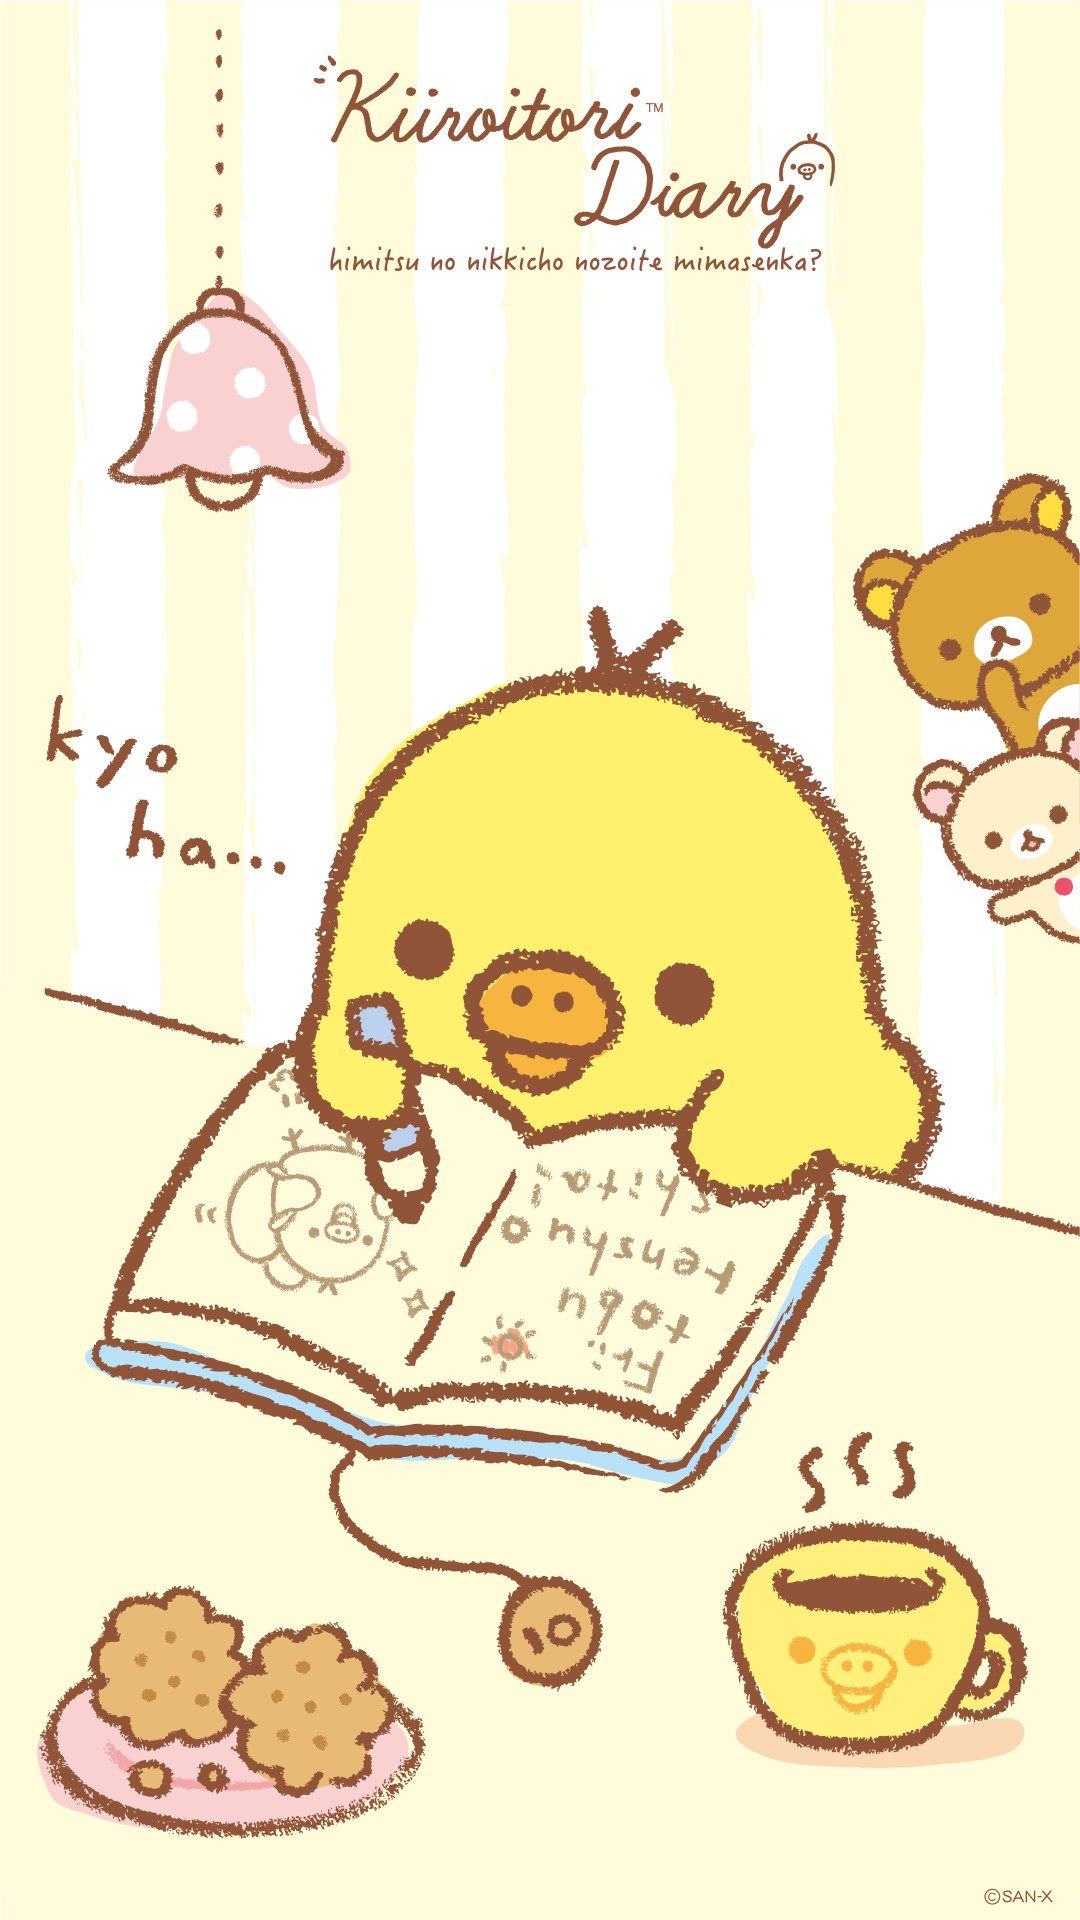 1080x1920 Quickly put small fresh Rilakkuma Wallpaper for your phone now! In pictures!